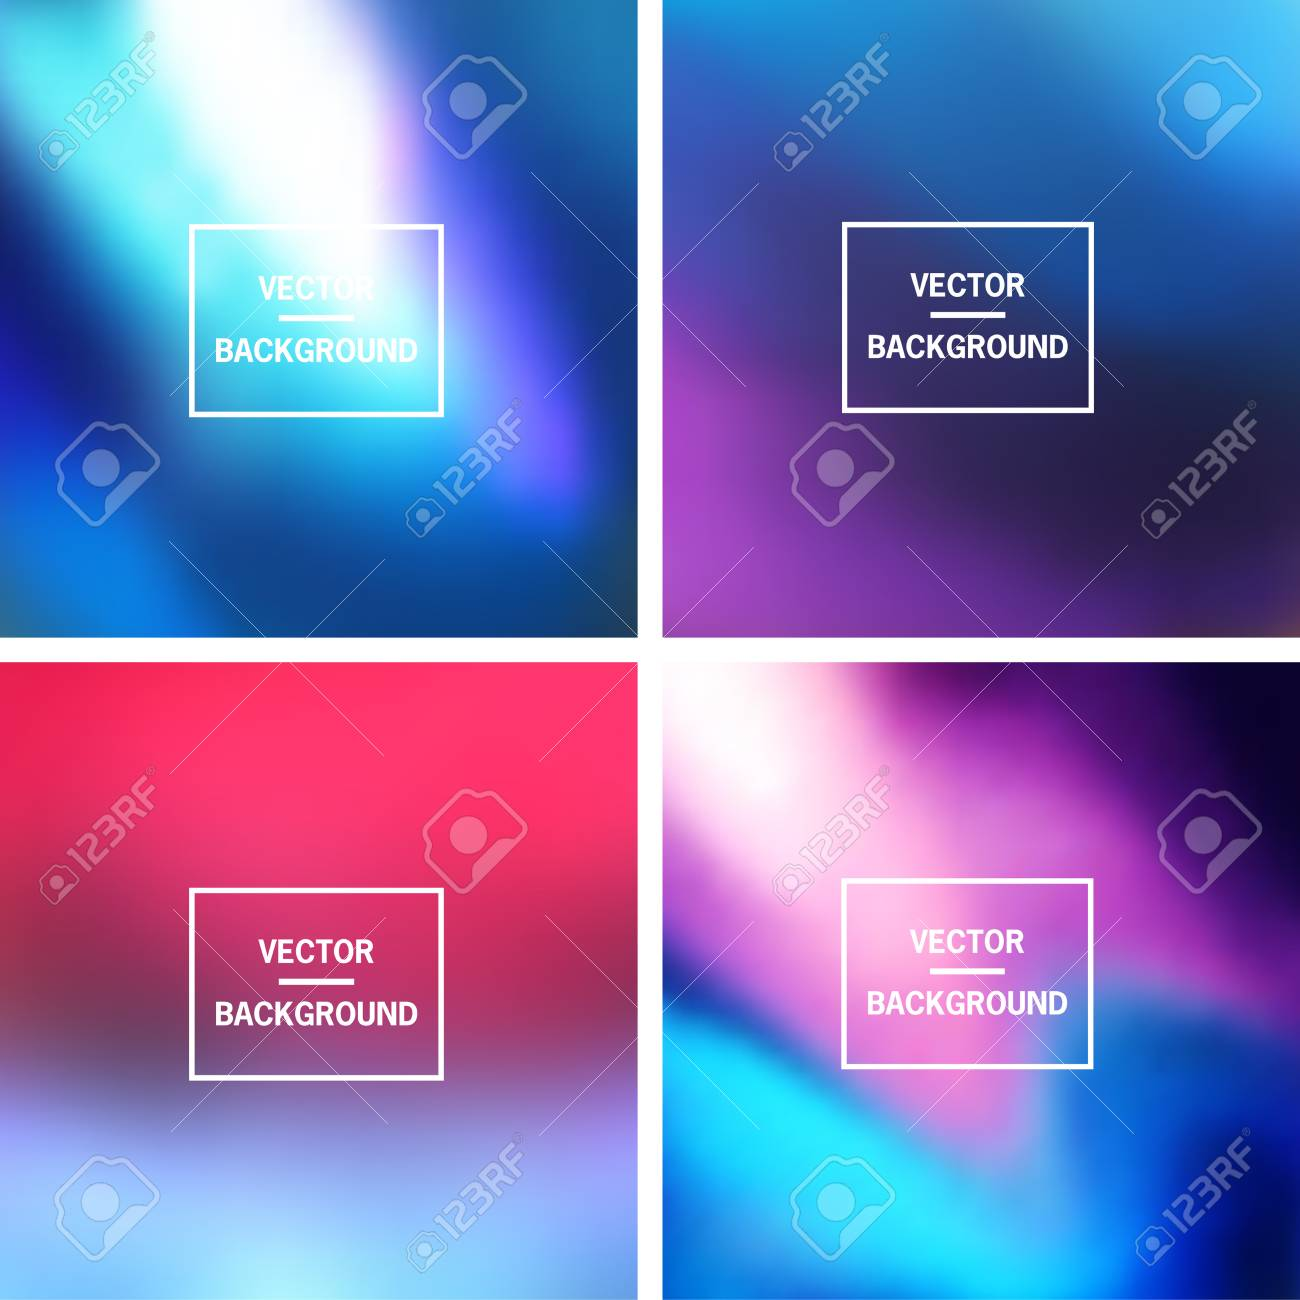 Abstract colorful blurred vector backgrounds. Elements for your website or presentation. - 46960781